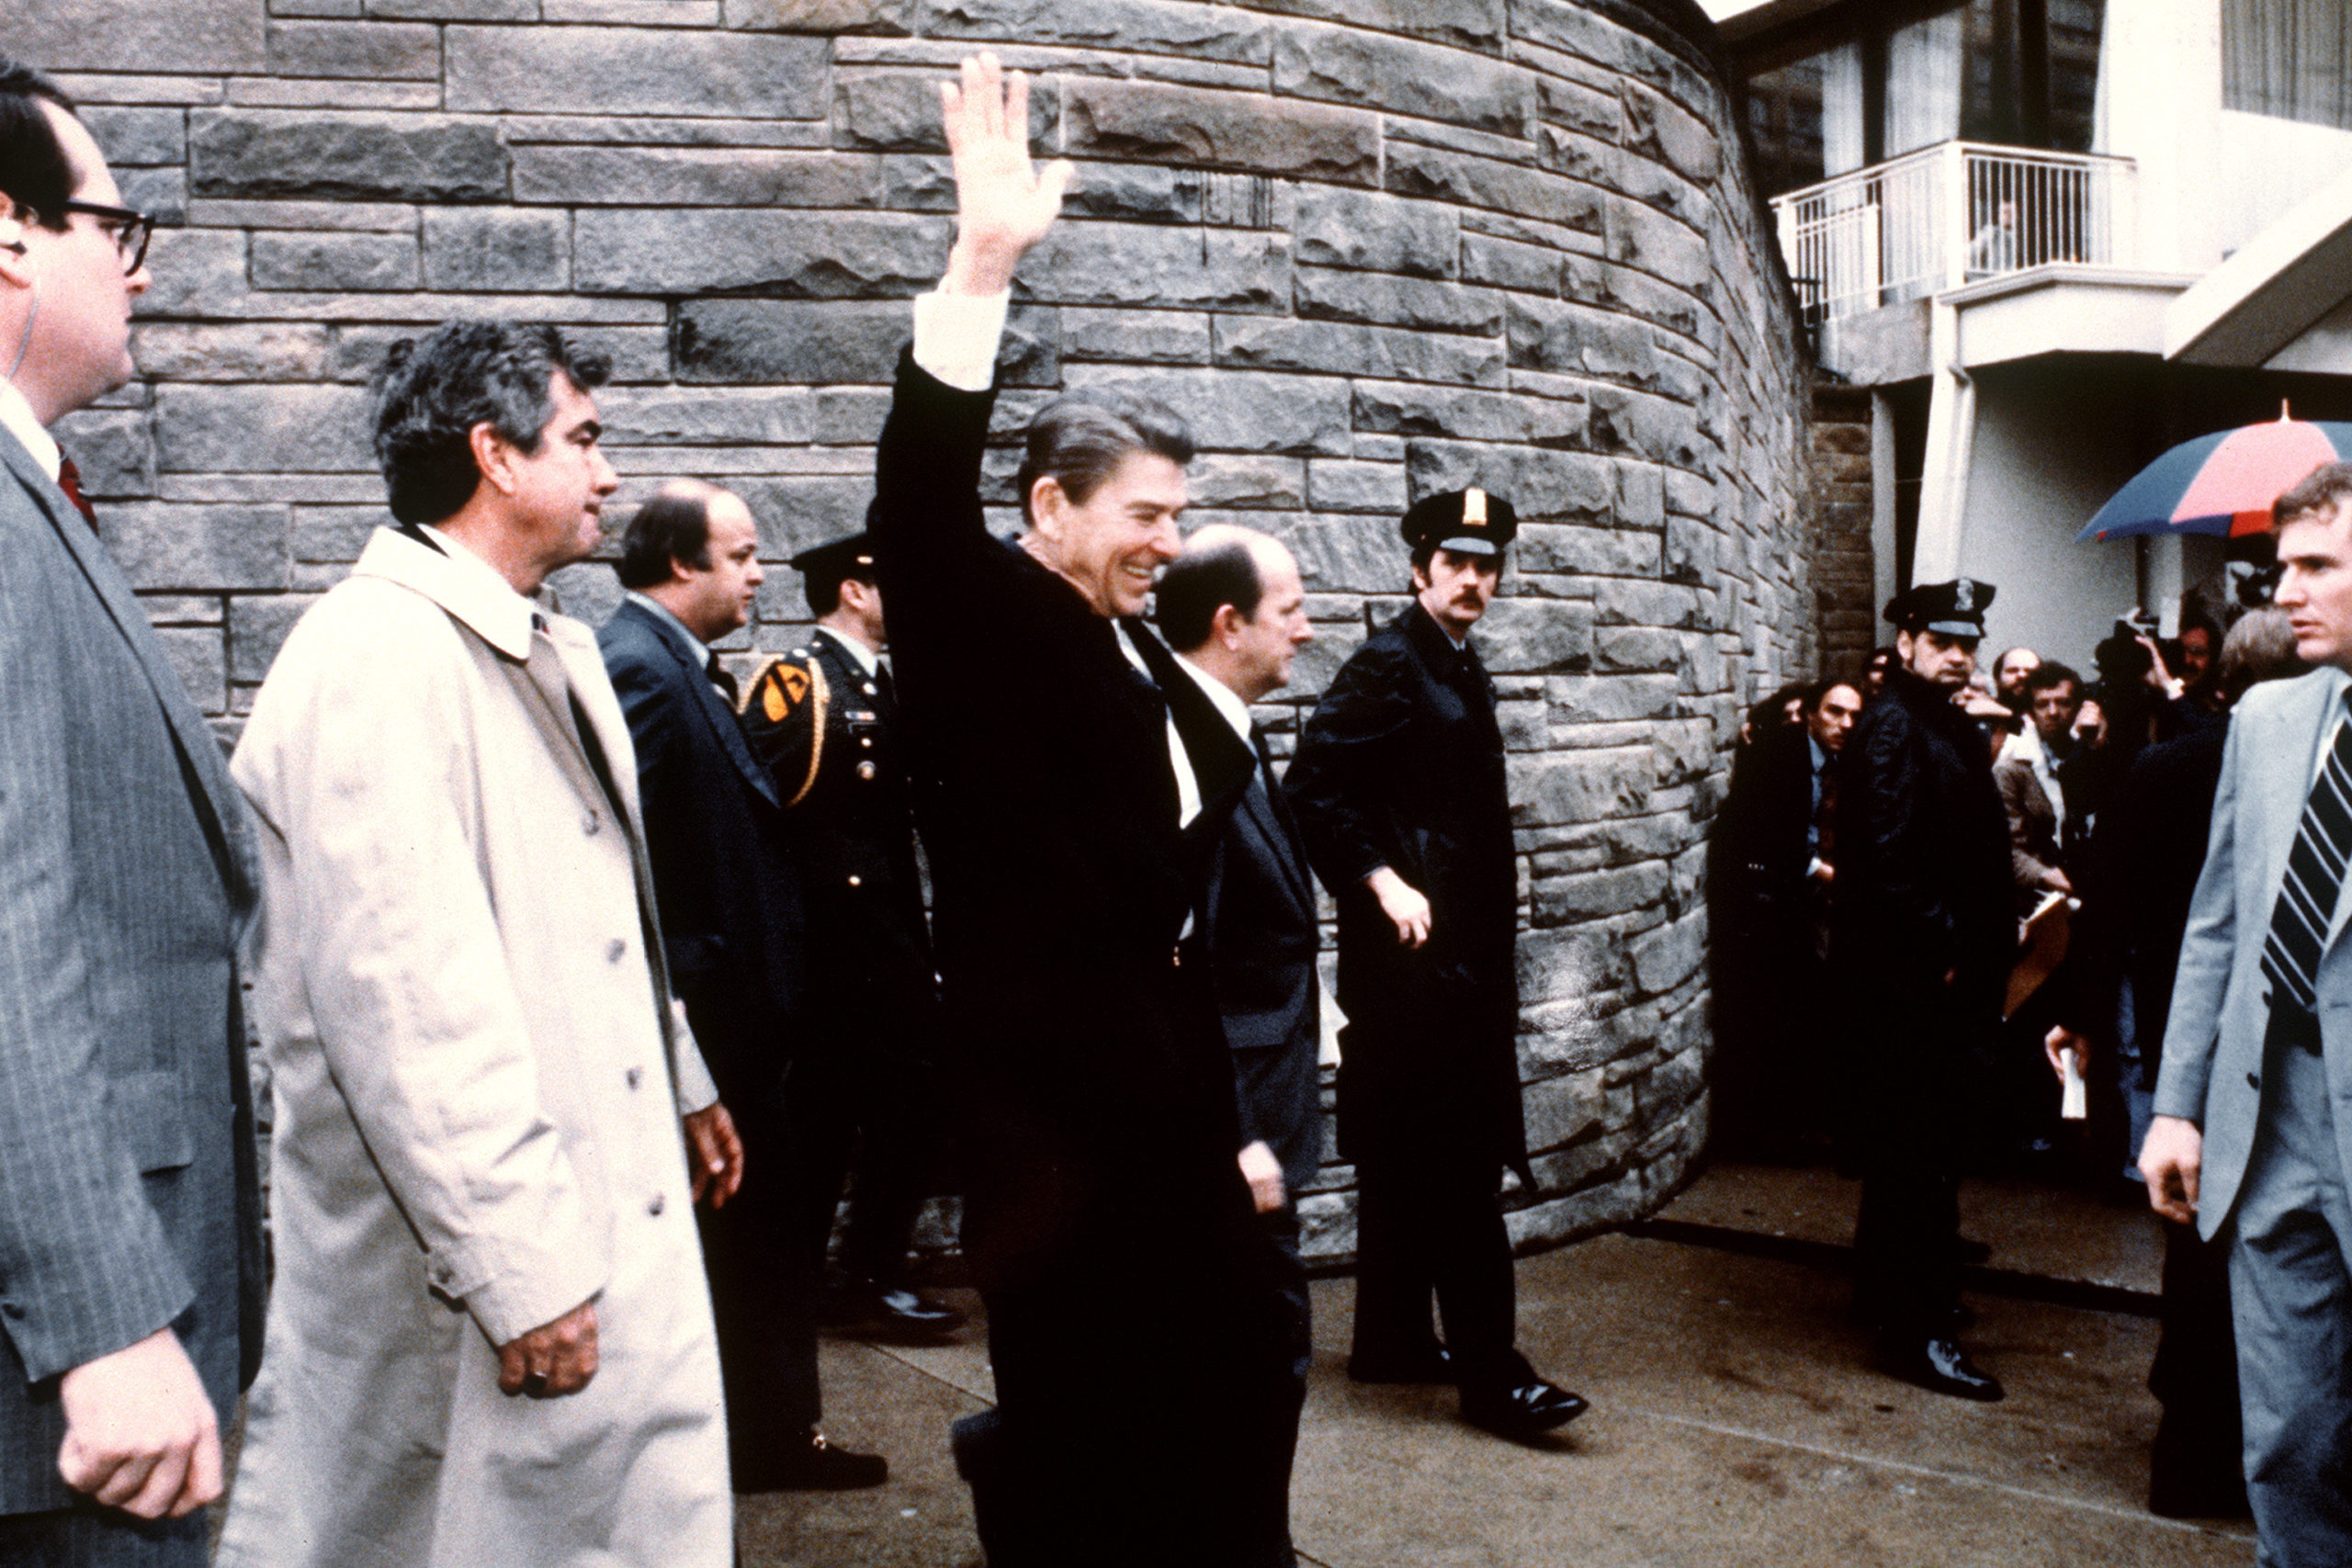 This photo taken by presidential photographer Mike Evens on March 30, 1981 shows President Ronald Reagan waving to the crowd just before the assassination attempt on him, after a conference outside the Hilton Hotel in Washington, D.C.. Reagan was hit by one of six shots fired by John Hinckley, who also seriously injured press secretary James Brady (just behind the car). (MIKE EVENS/AFP via Getty Images)